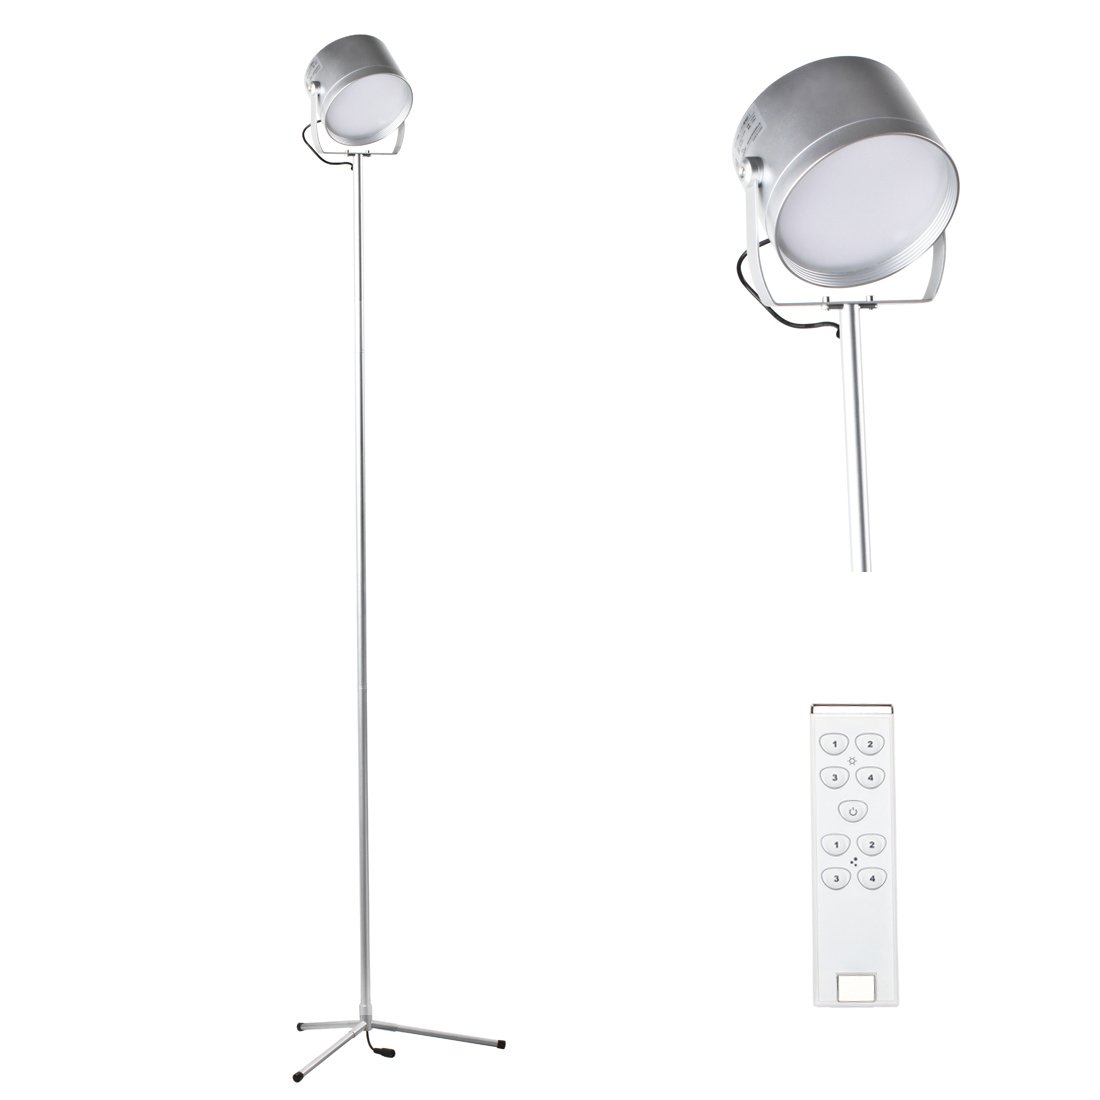 5 Feet LED Remote Control Led Floor Lamp For Living Room Bedroom 700 Lumens Bright White